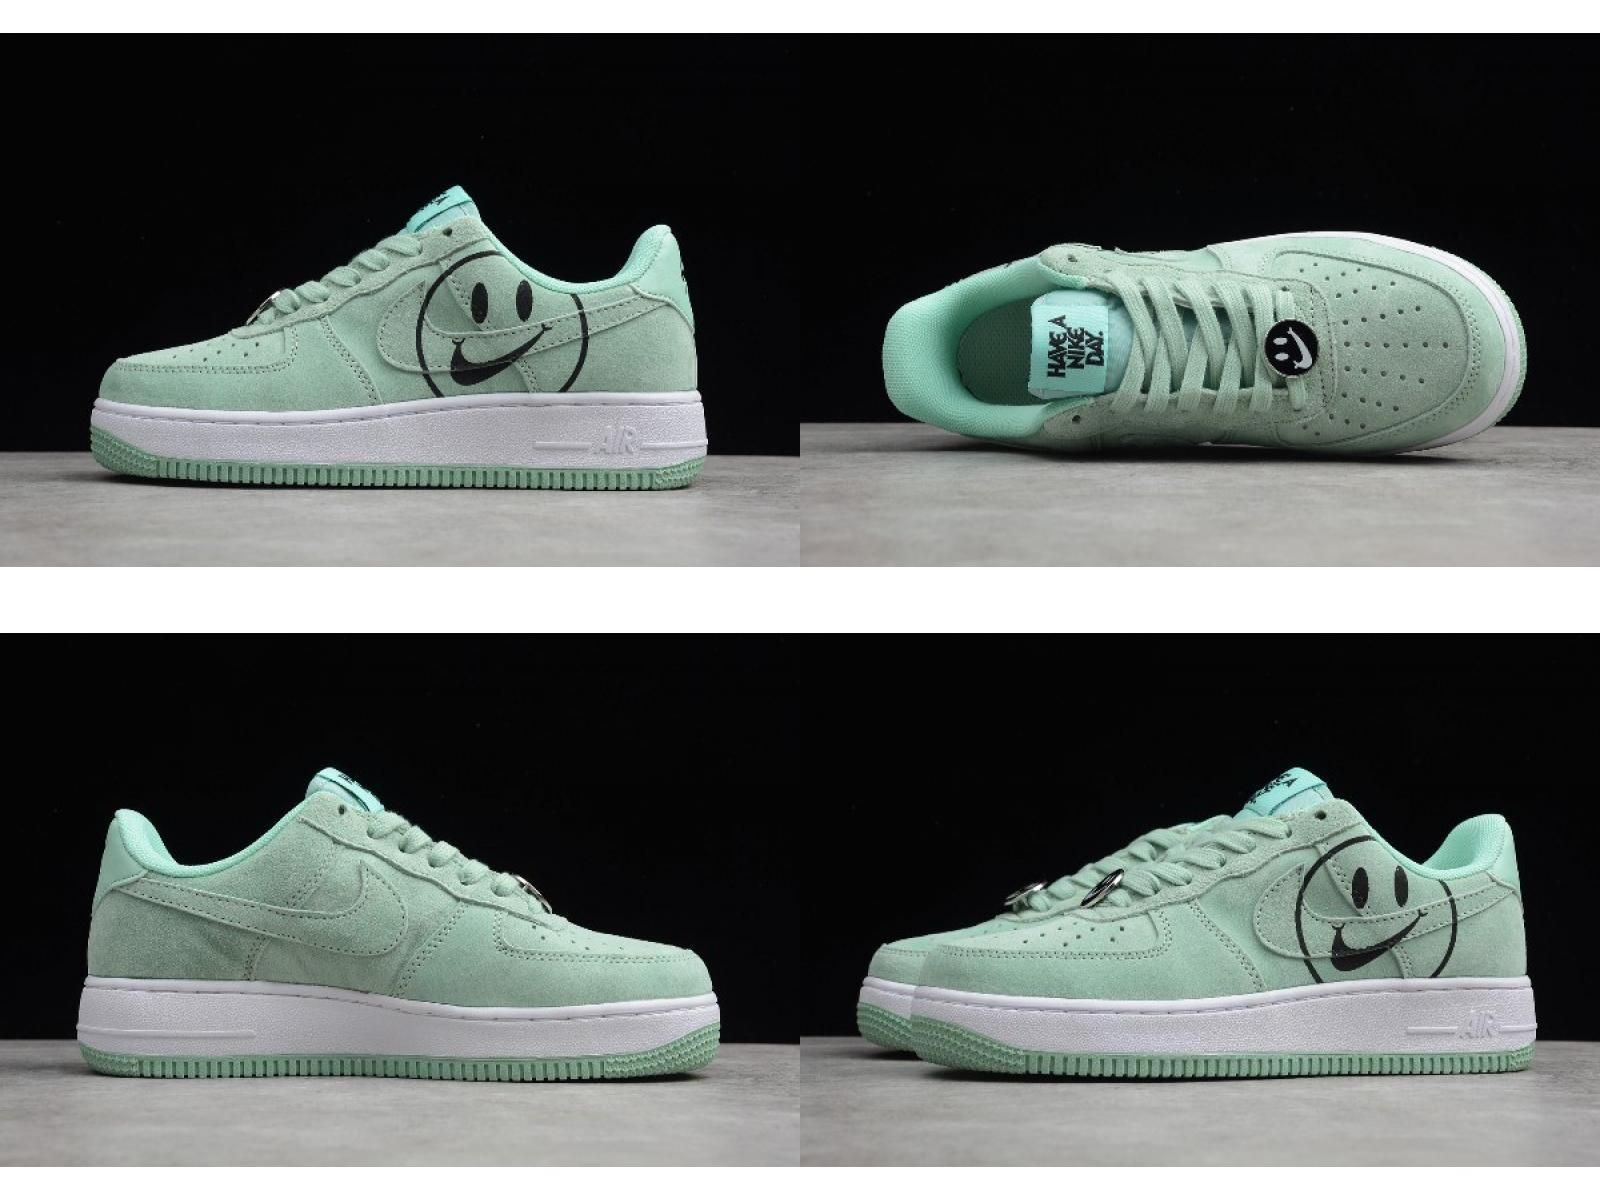 2019 Rushed Time limited WMNS Nike Air Force 1